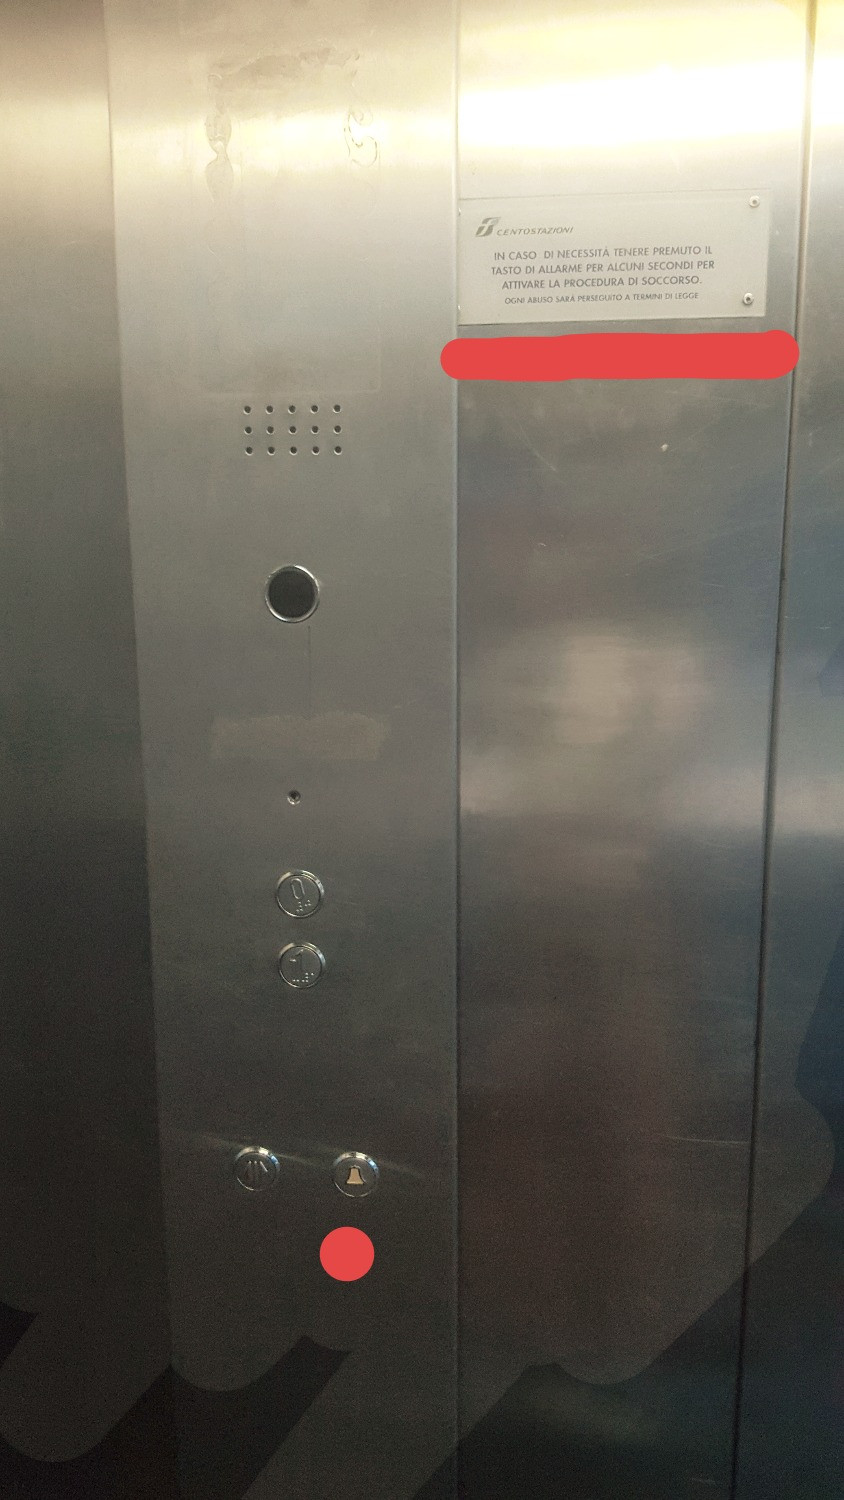 An elevator's emergency button and instructions are placed far from each other